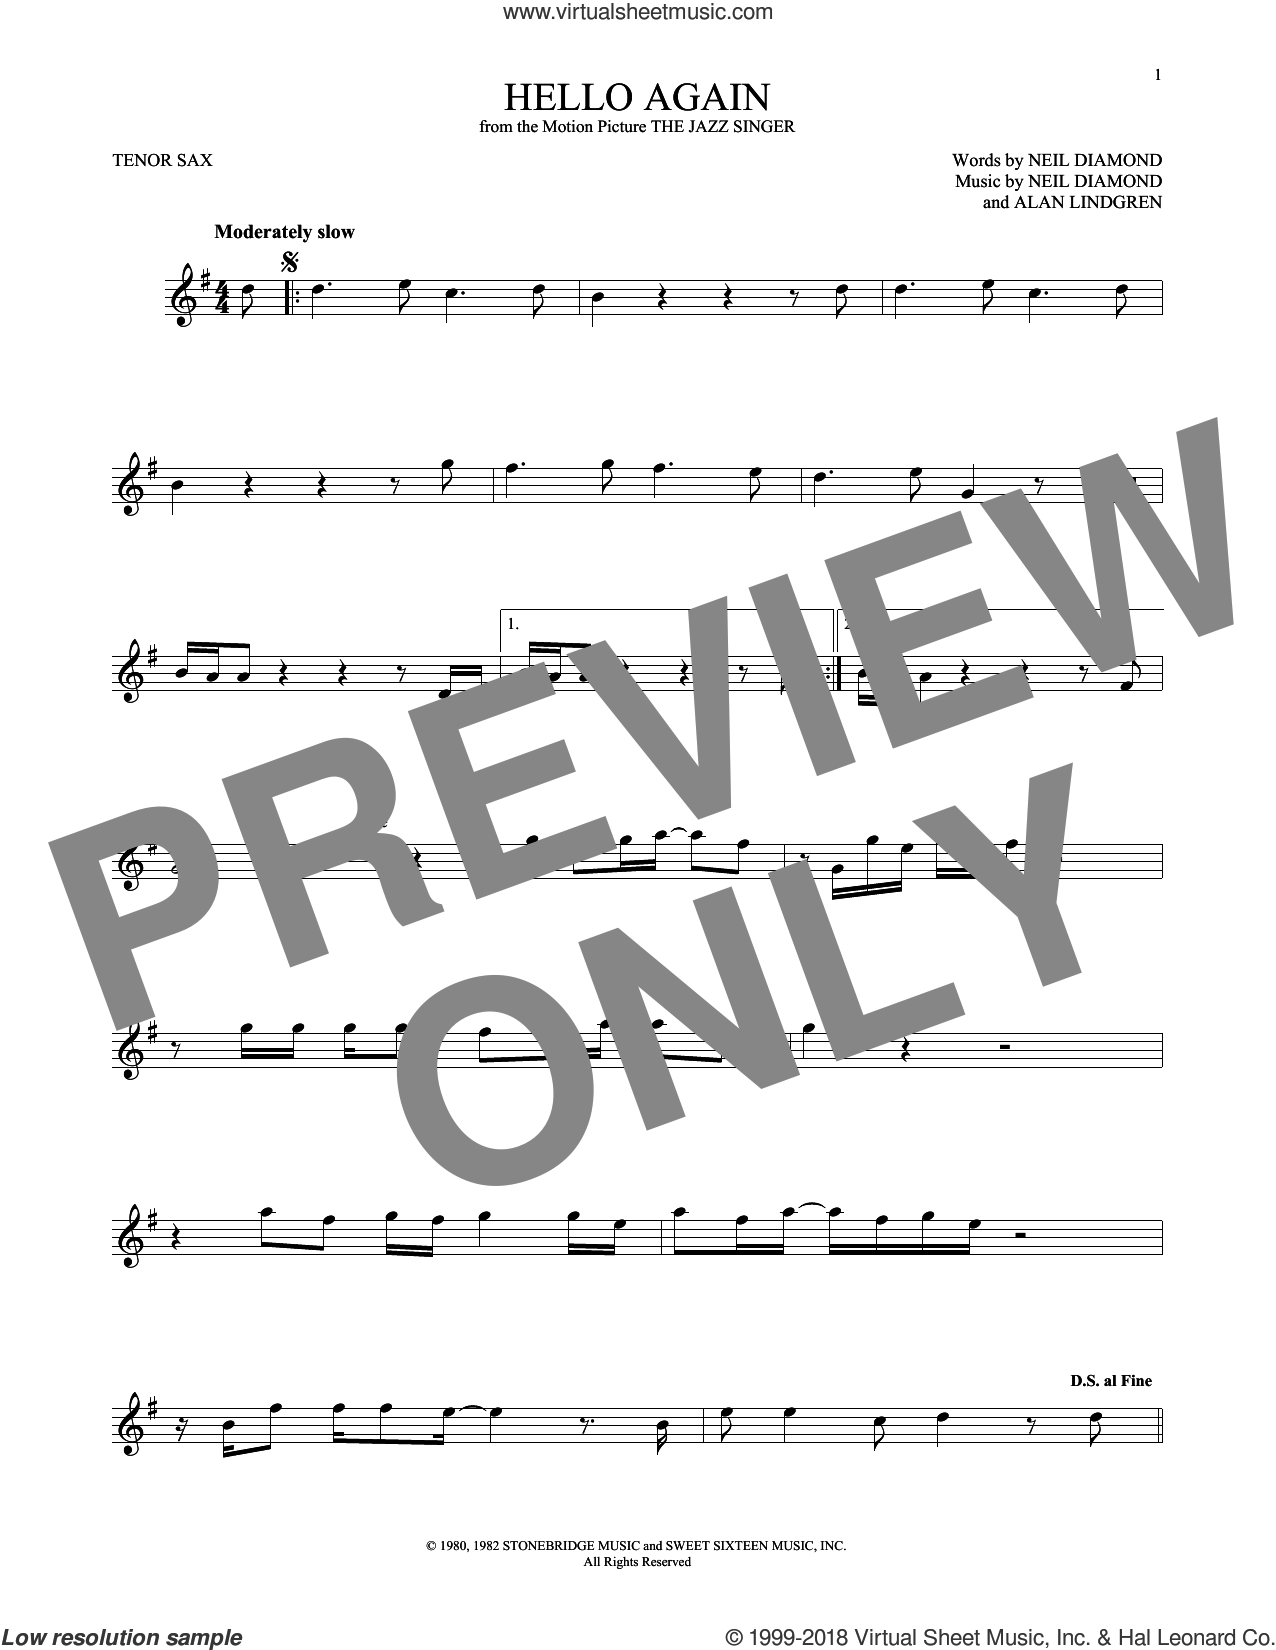 Hello Again sheet music for tenor saxophone solo by Neil Diamond and Alan Lindgren, intermediate skill level